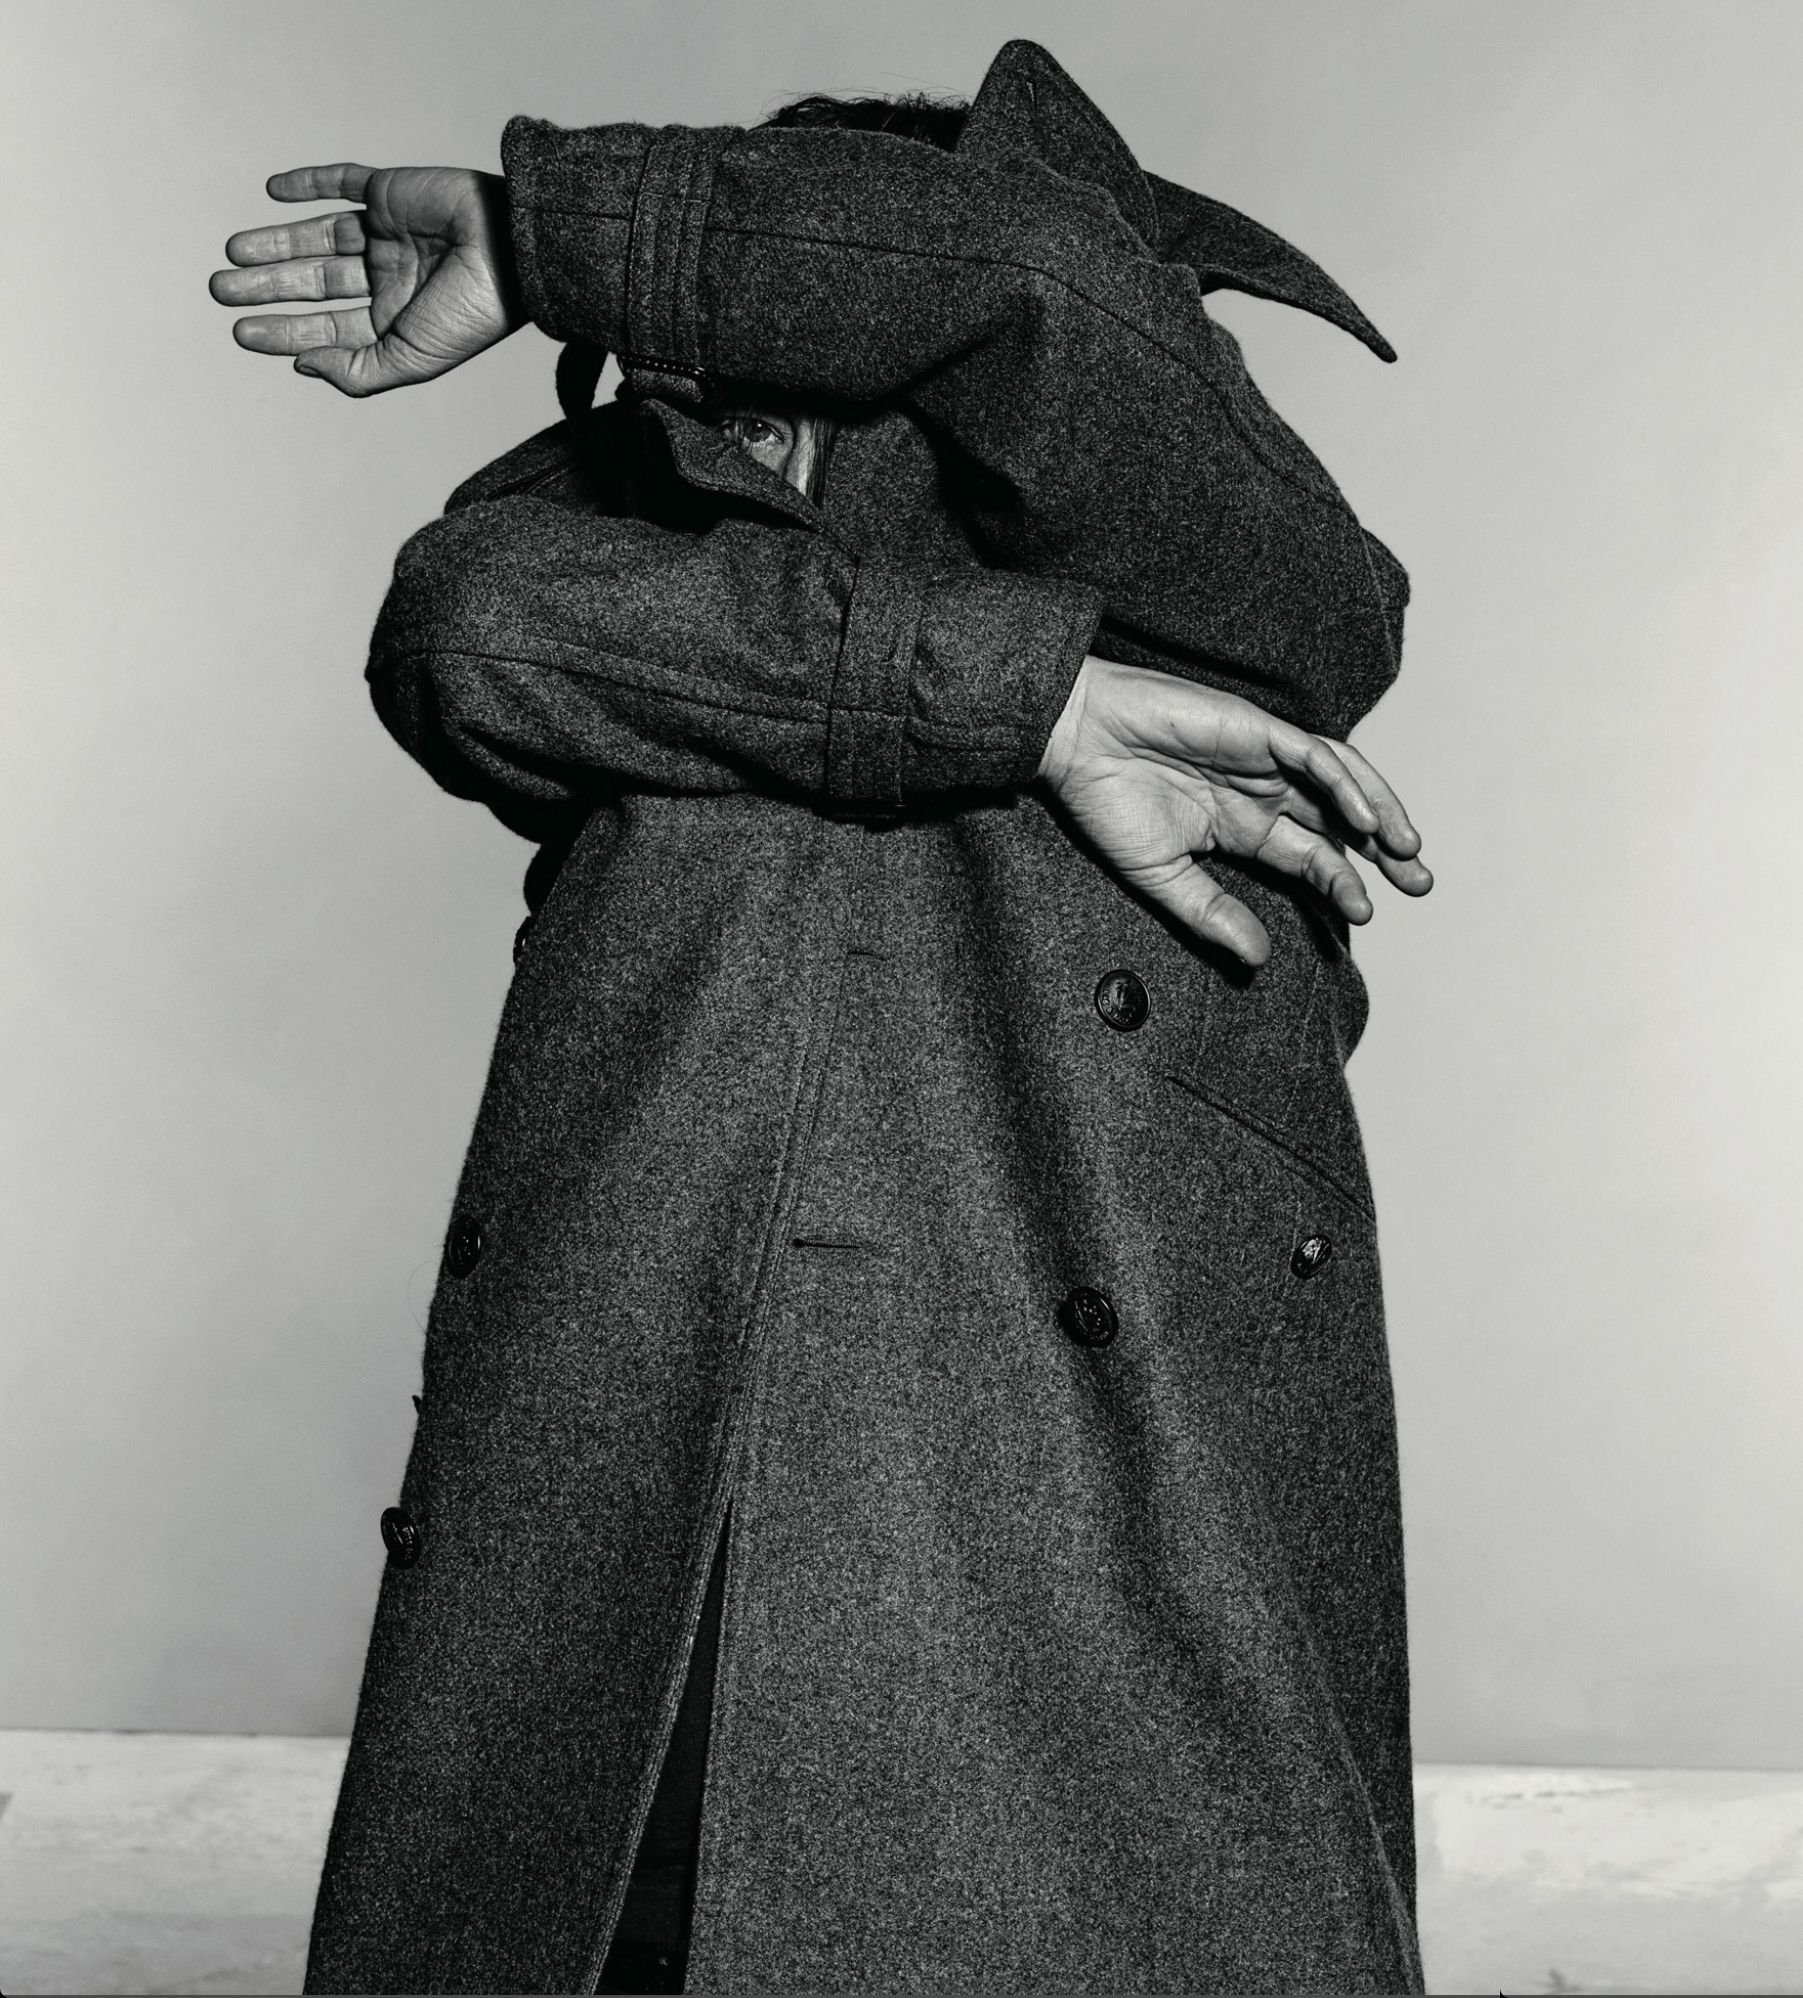 Thom Yorke by Richard Burbridge for Dazed and Confused, February 2013.